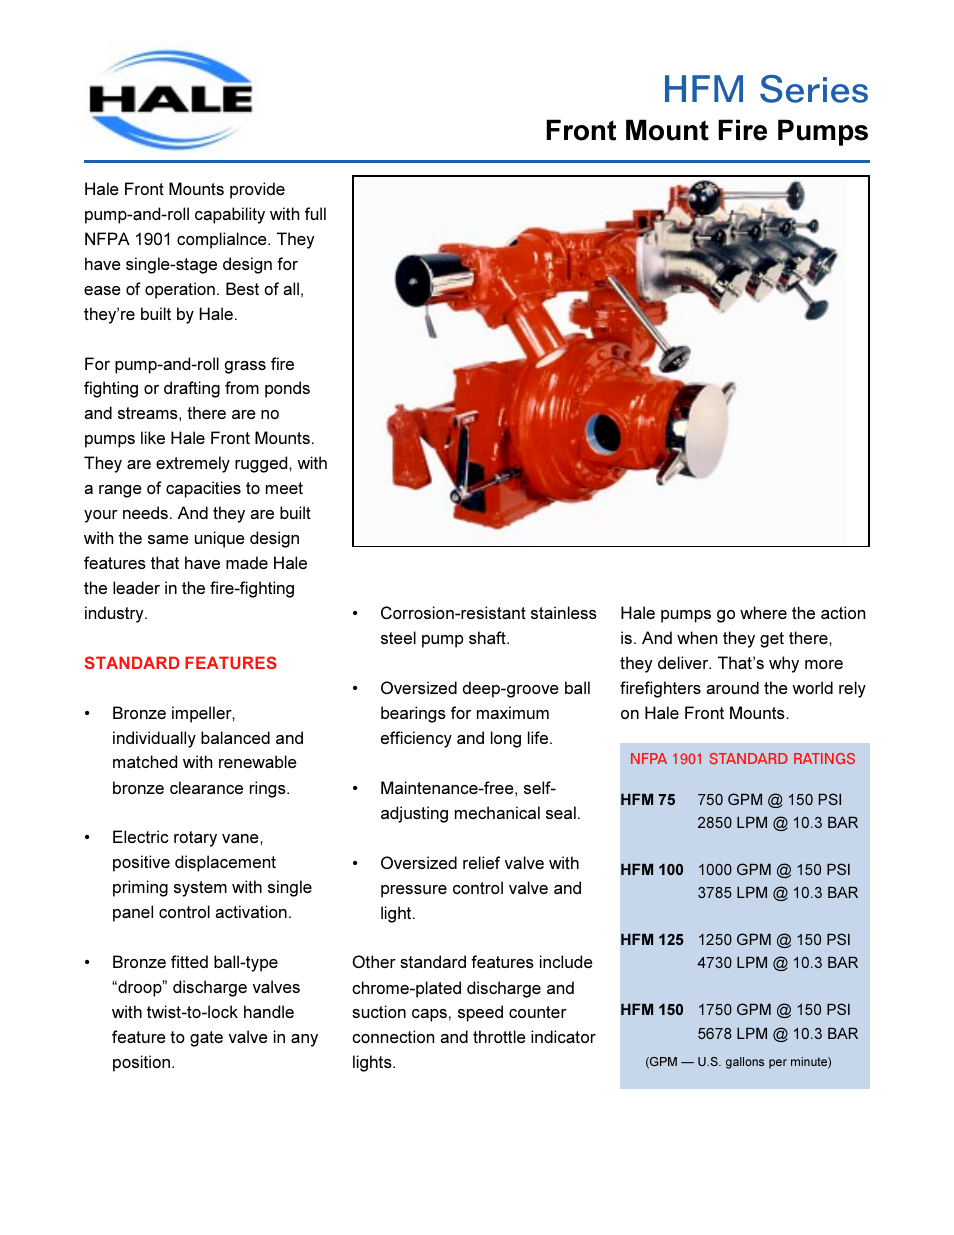 Hfm series, Front mount fire pumps | Hale HFM User Manual | Page 5 / 42